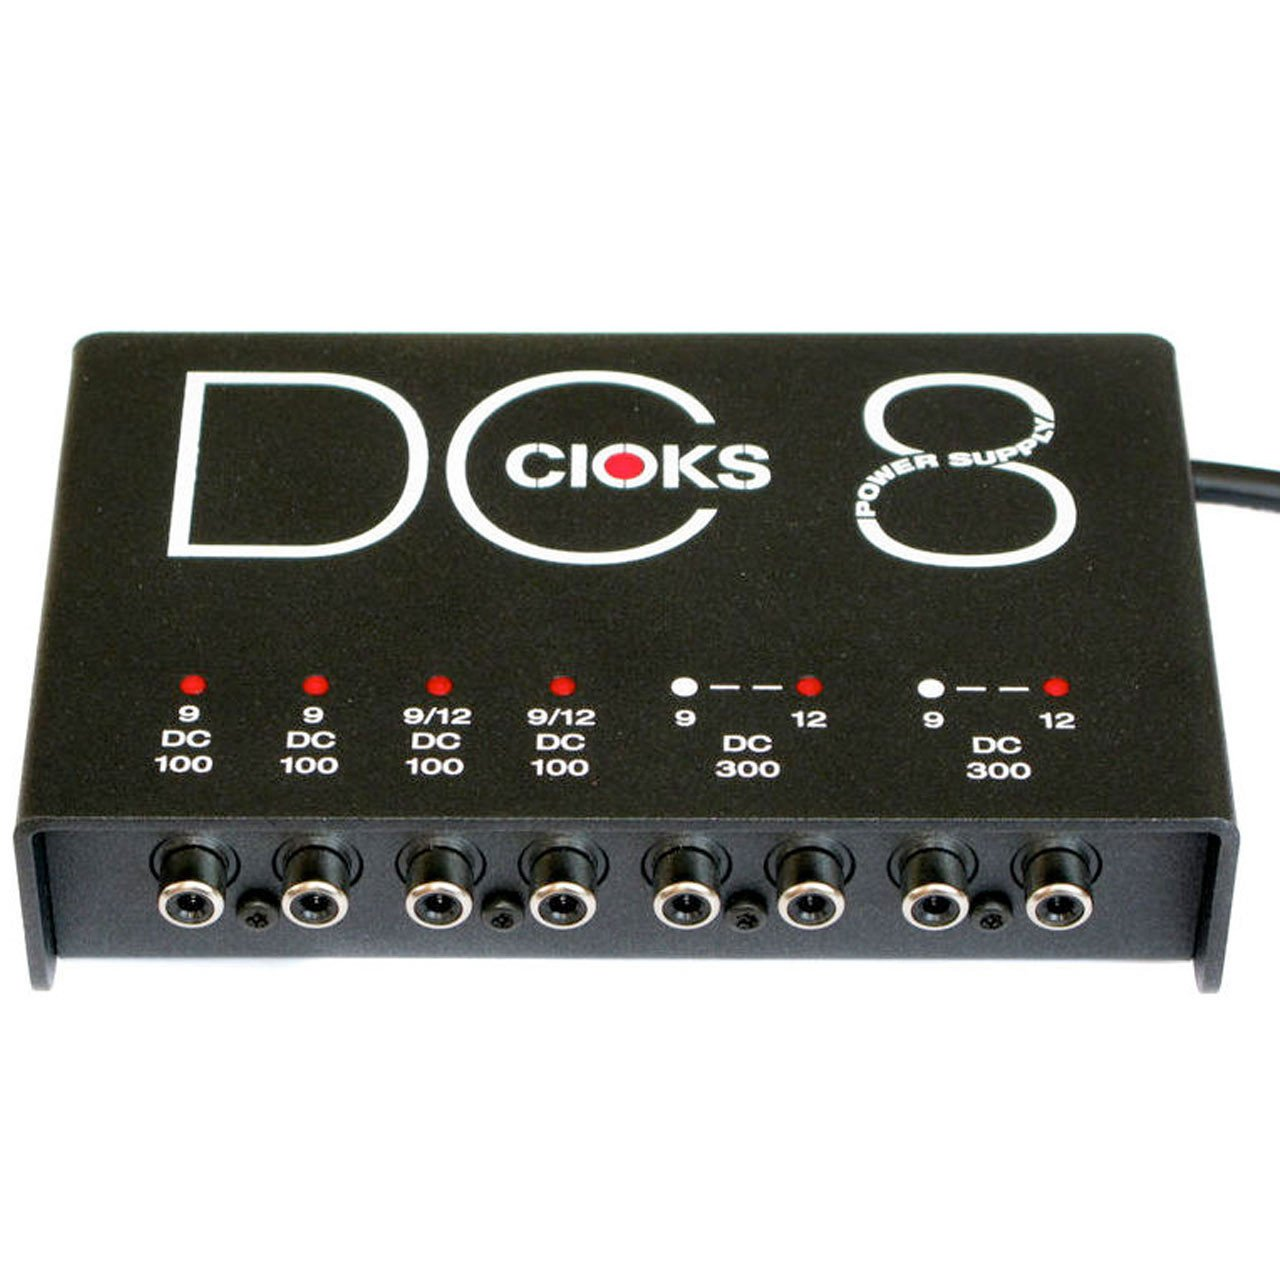 Power Supplies - CIOKS DC8 - Professional Power Supply For Effect Pedals With 8 Outlets